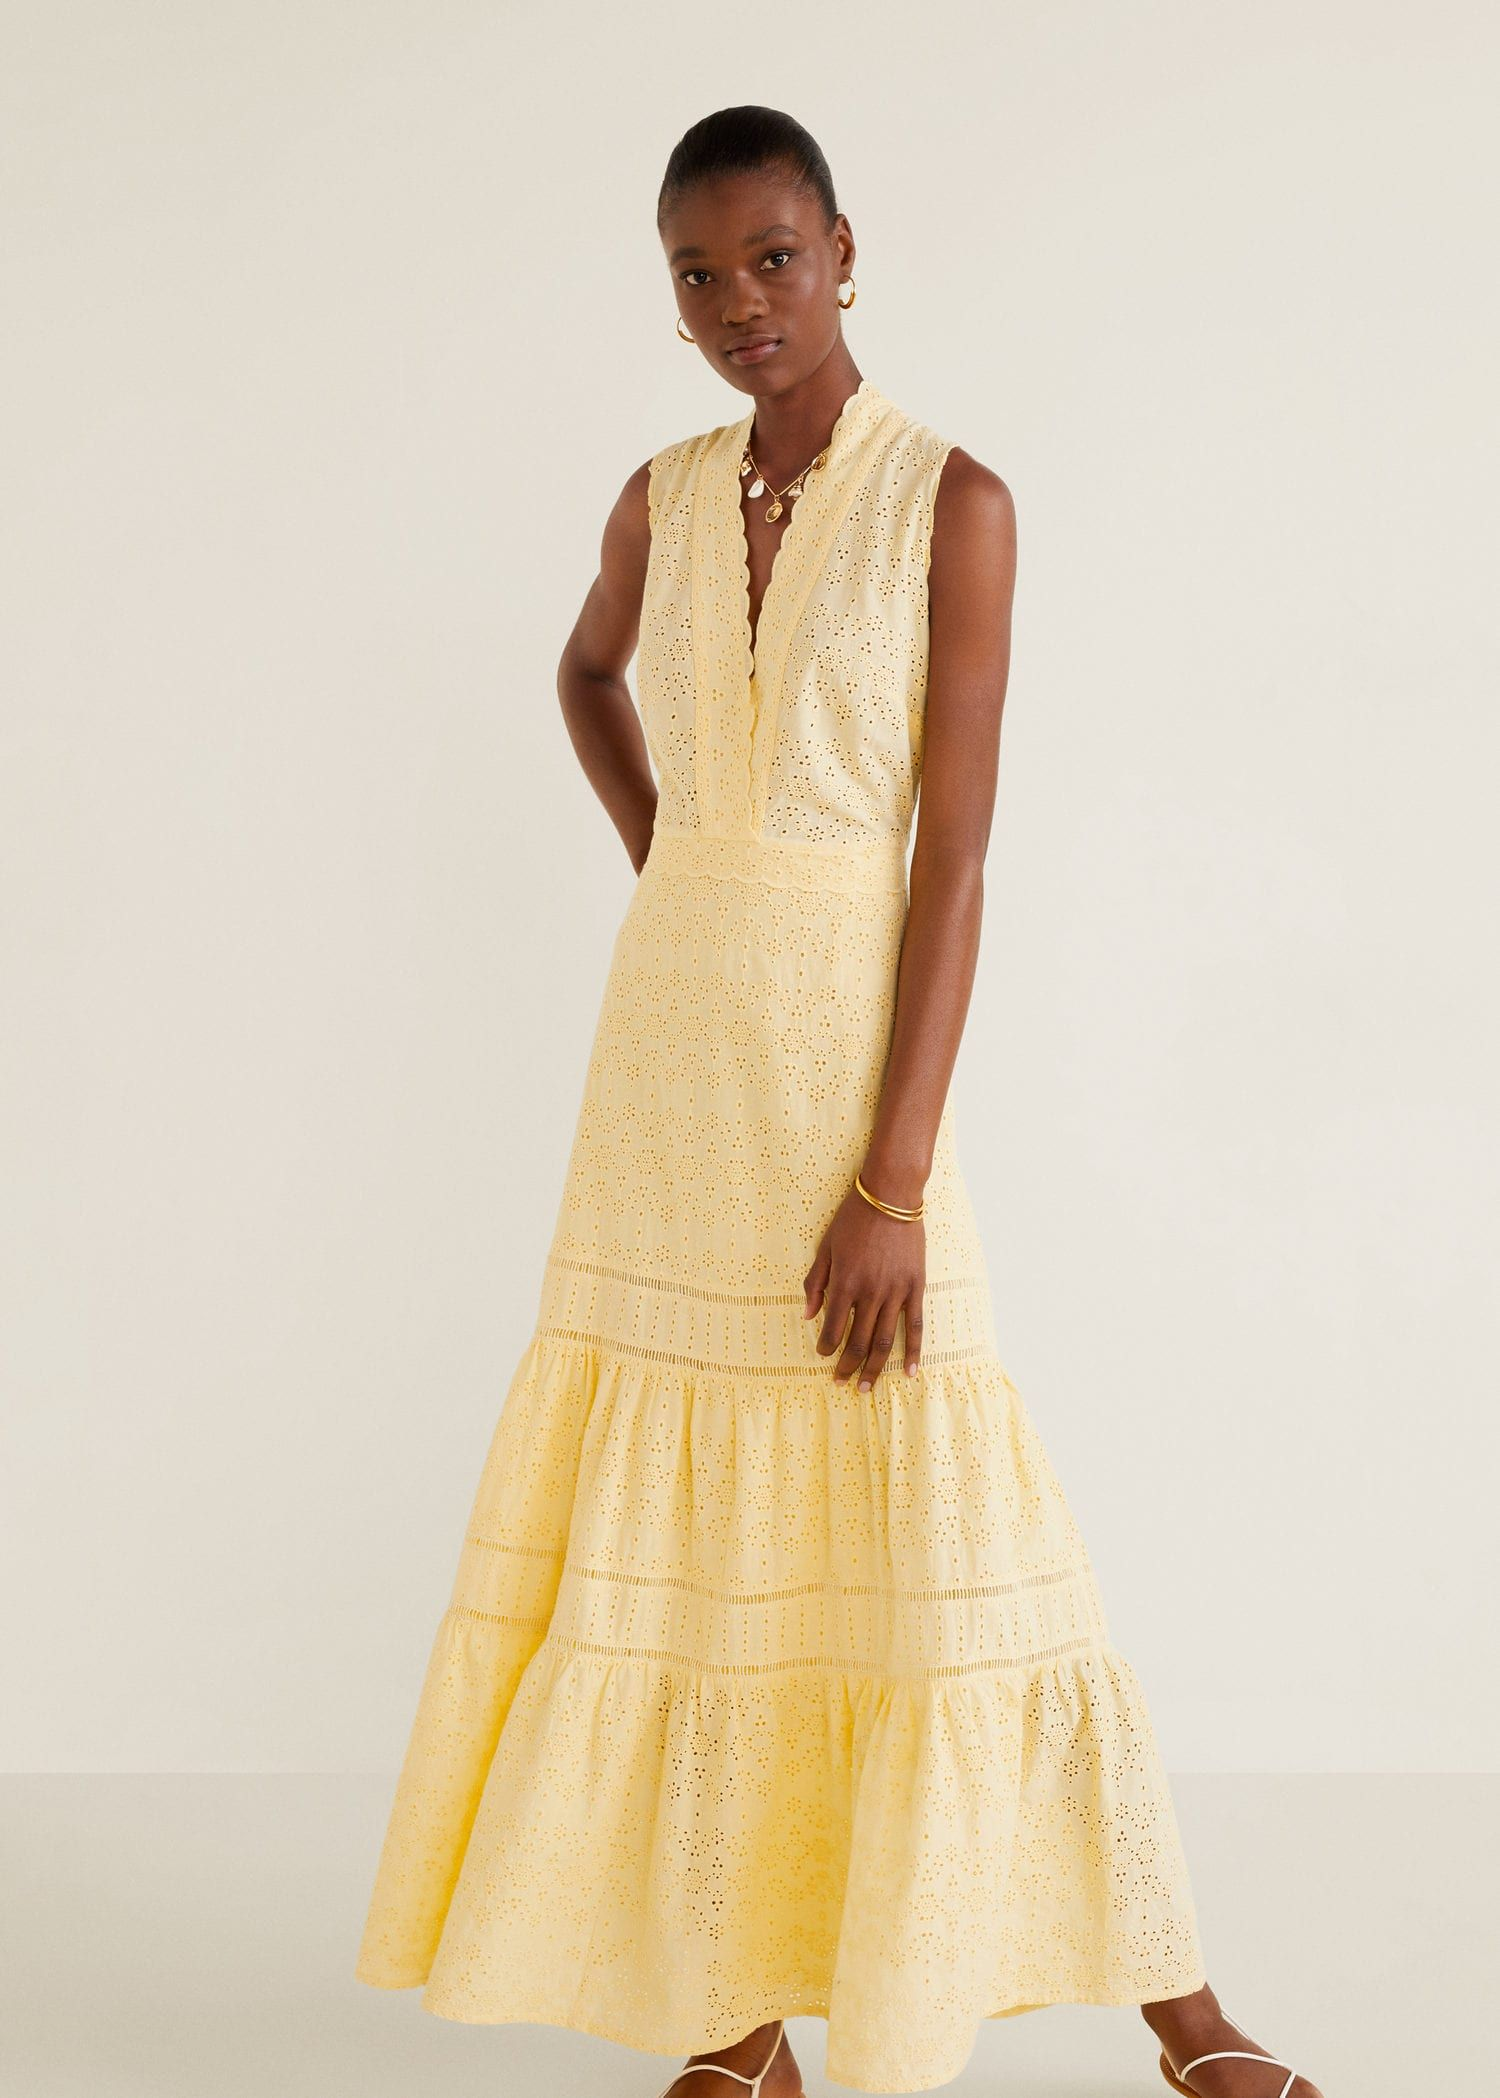 Embroidered dress Women | Spring outfits women, Dresses